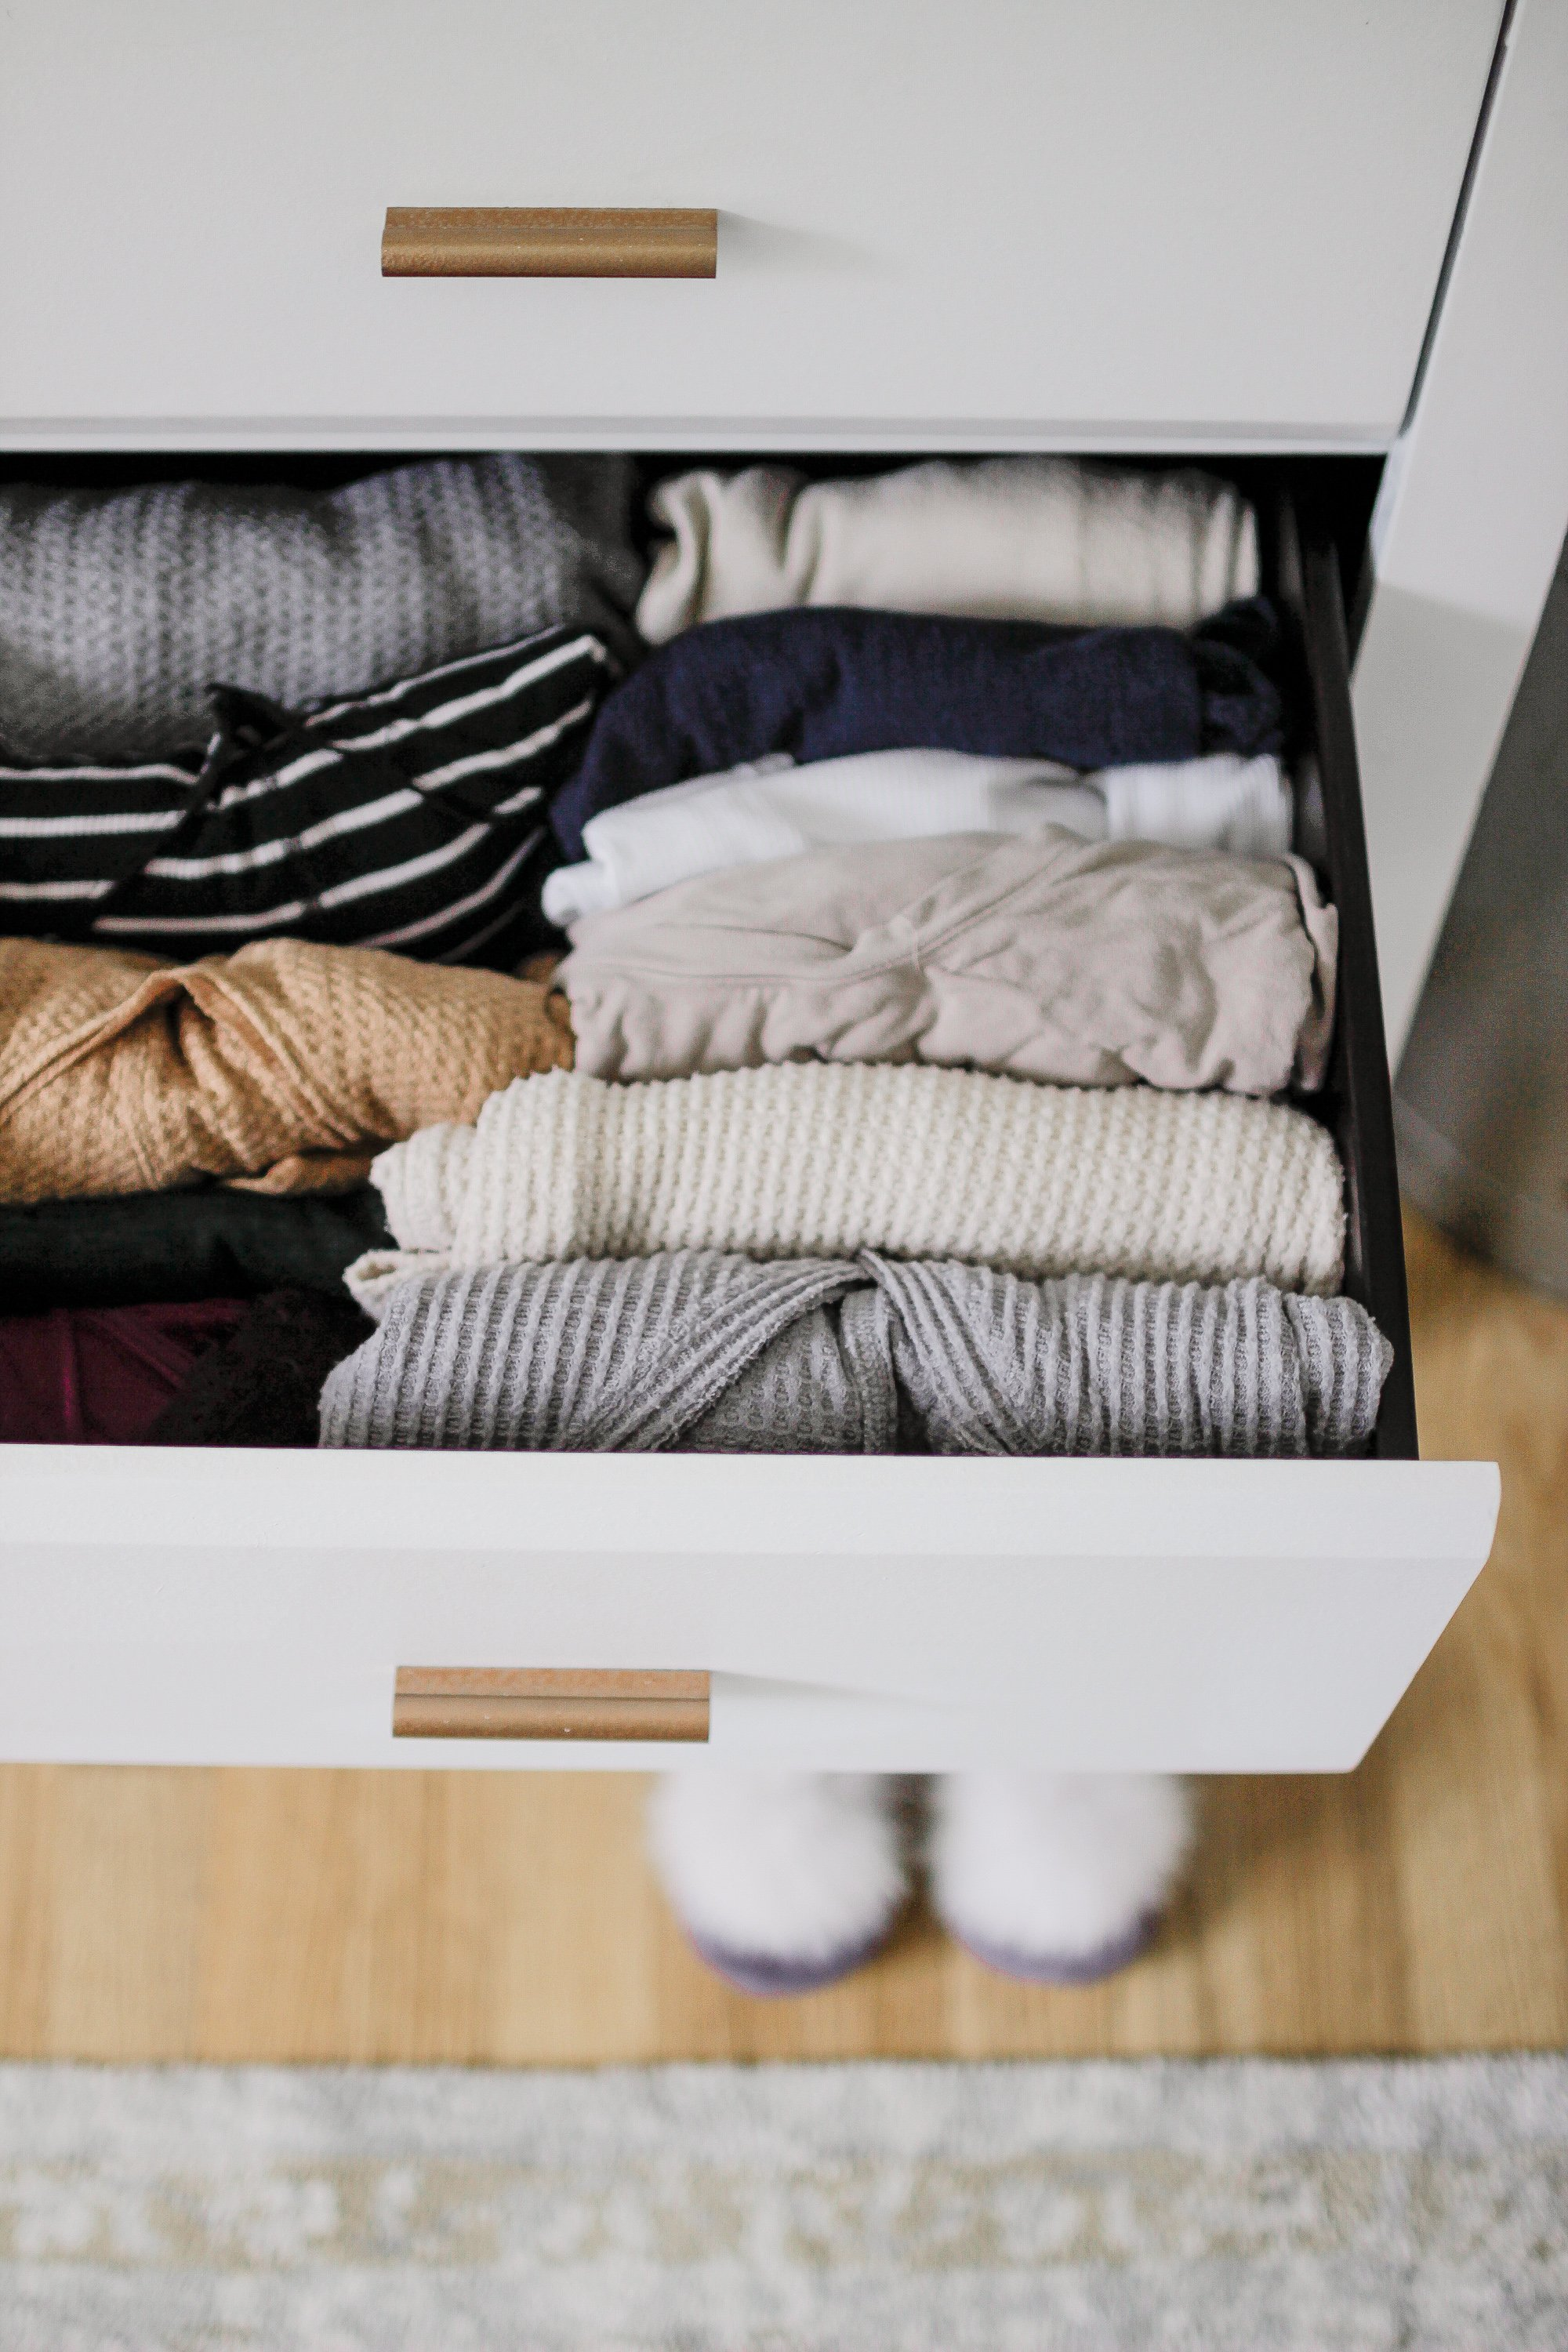 Being A Minimalist - I Marie Kondo'd My House!